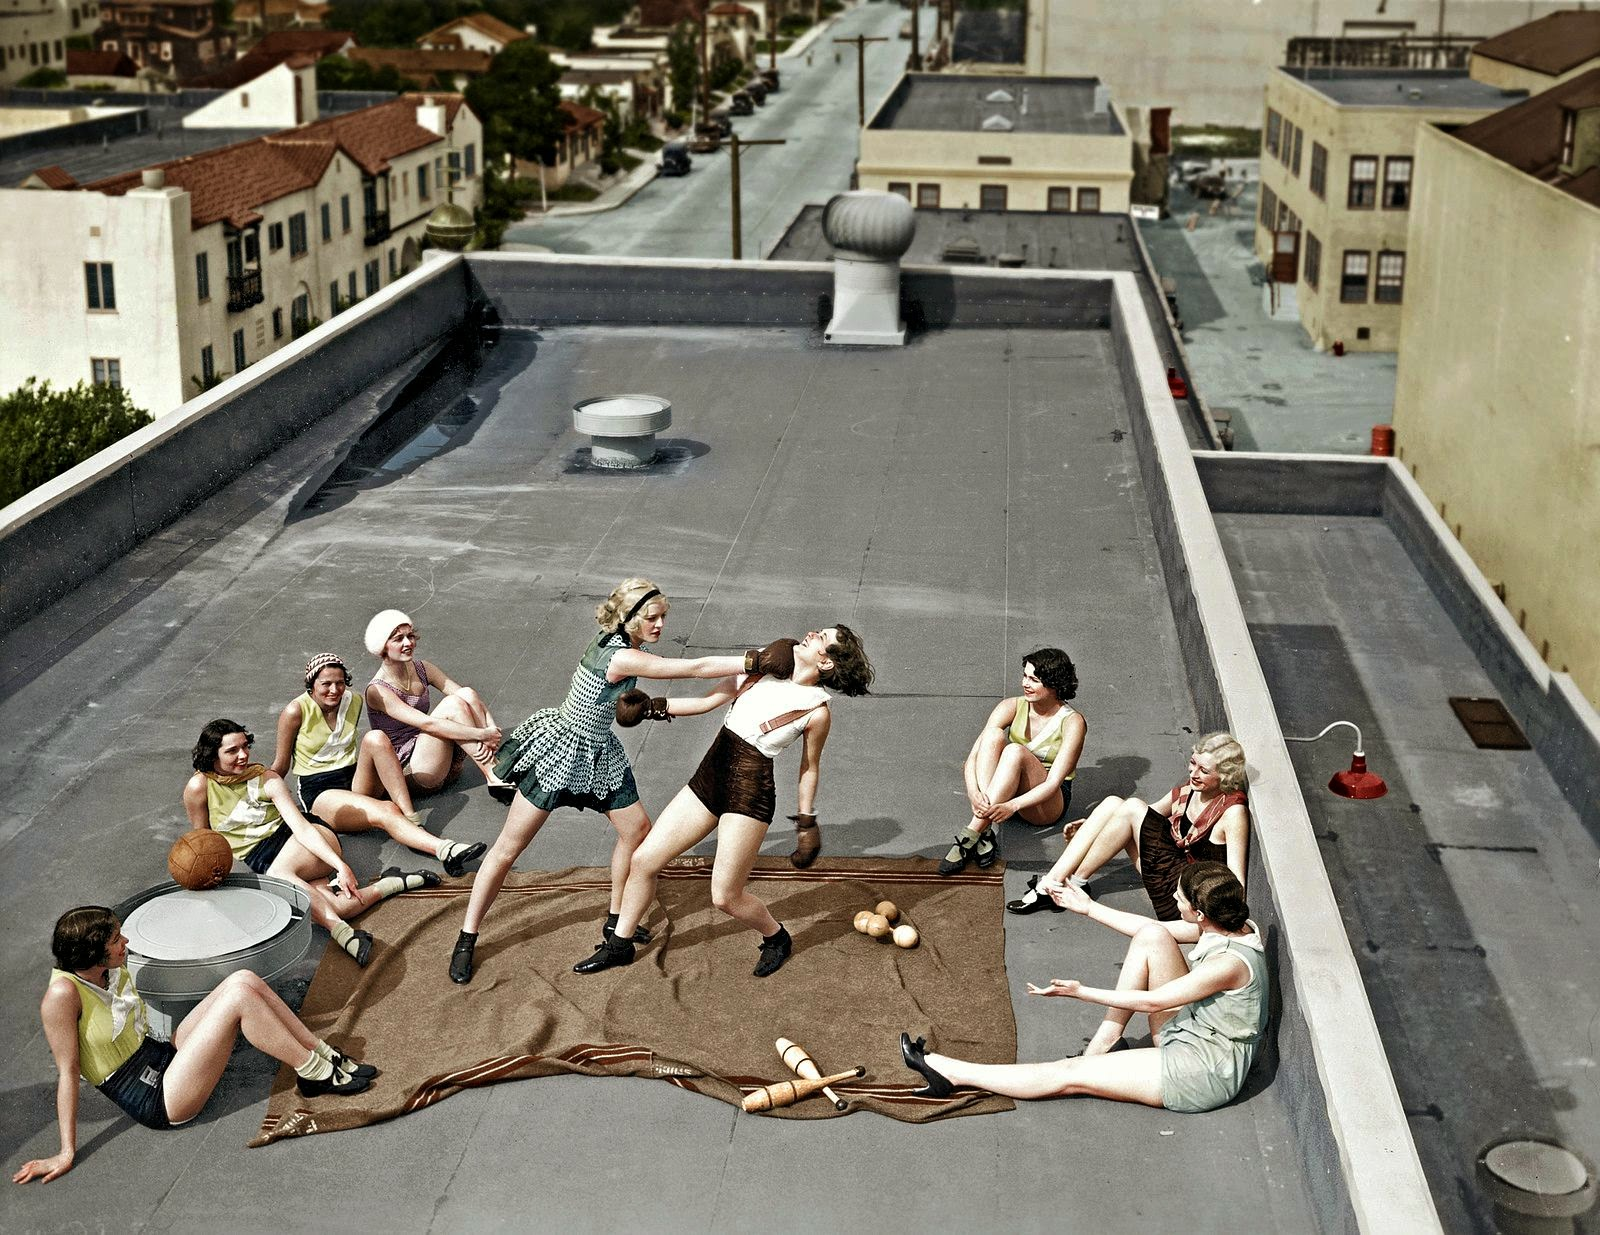 women_boxing_on_a_roof_1938_2.jpg